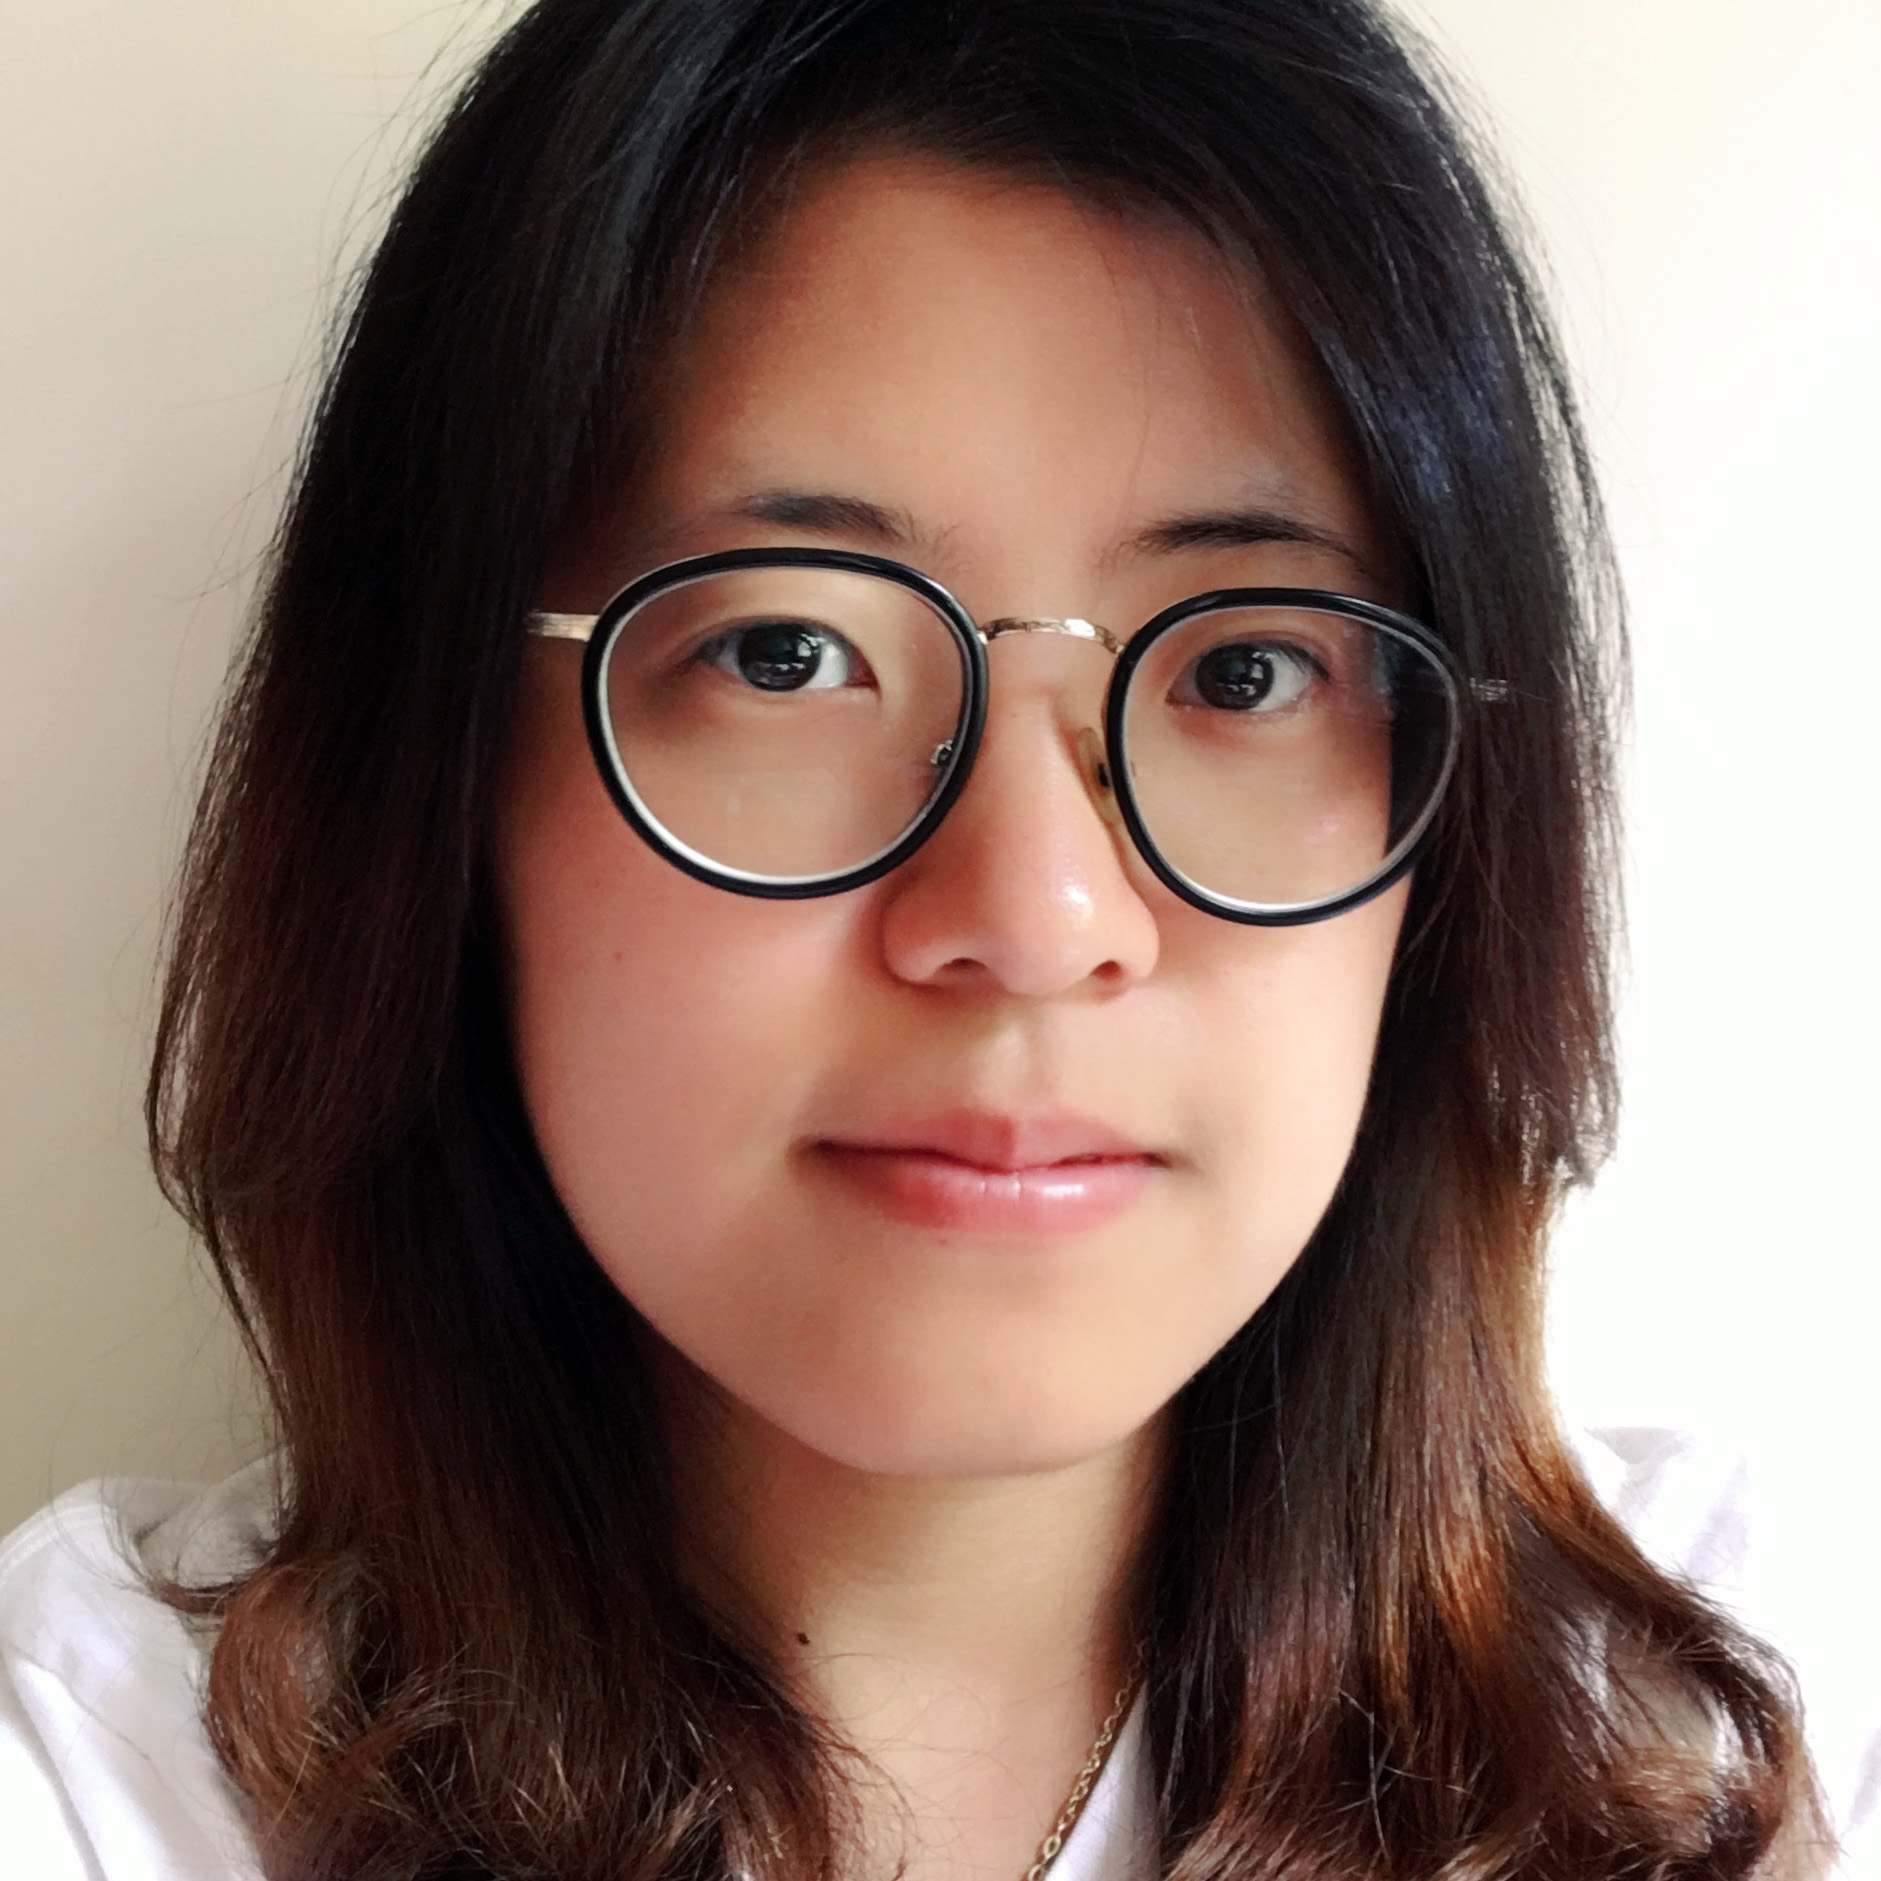 TAEYEON KIM(Engineer) - Taeyeon Kim is a maker who designs enjoyable experiences. She currently studying at Design and Technology of Parsons(MFA) and graduated from Media Department of Soongsil University in Korea(BEng/MEng). She is exploring a new type of physical interface based on human body and storytelling.